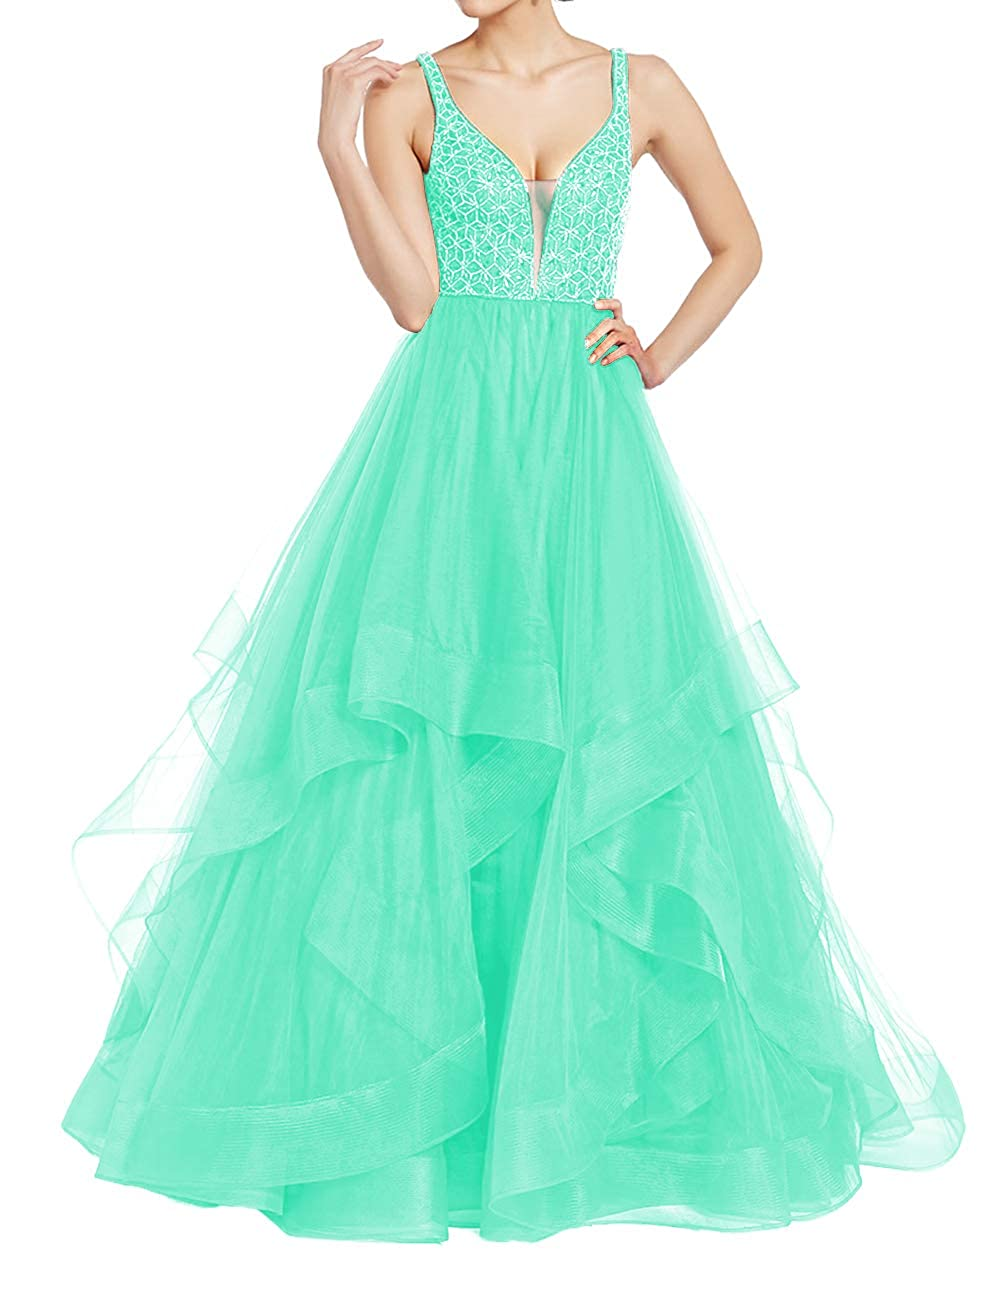 Aqua Uther Elegant Tulle Evening Ball Gowns Long Beaded Formal Prom Party Dresses